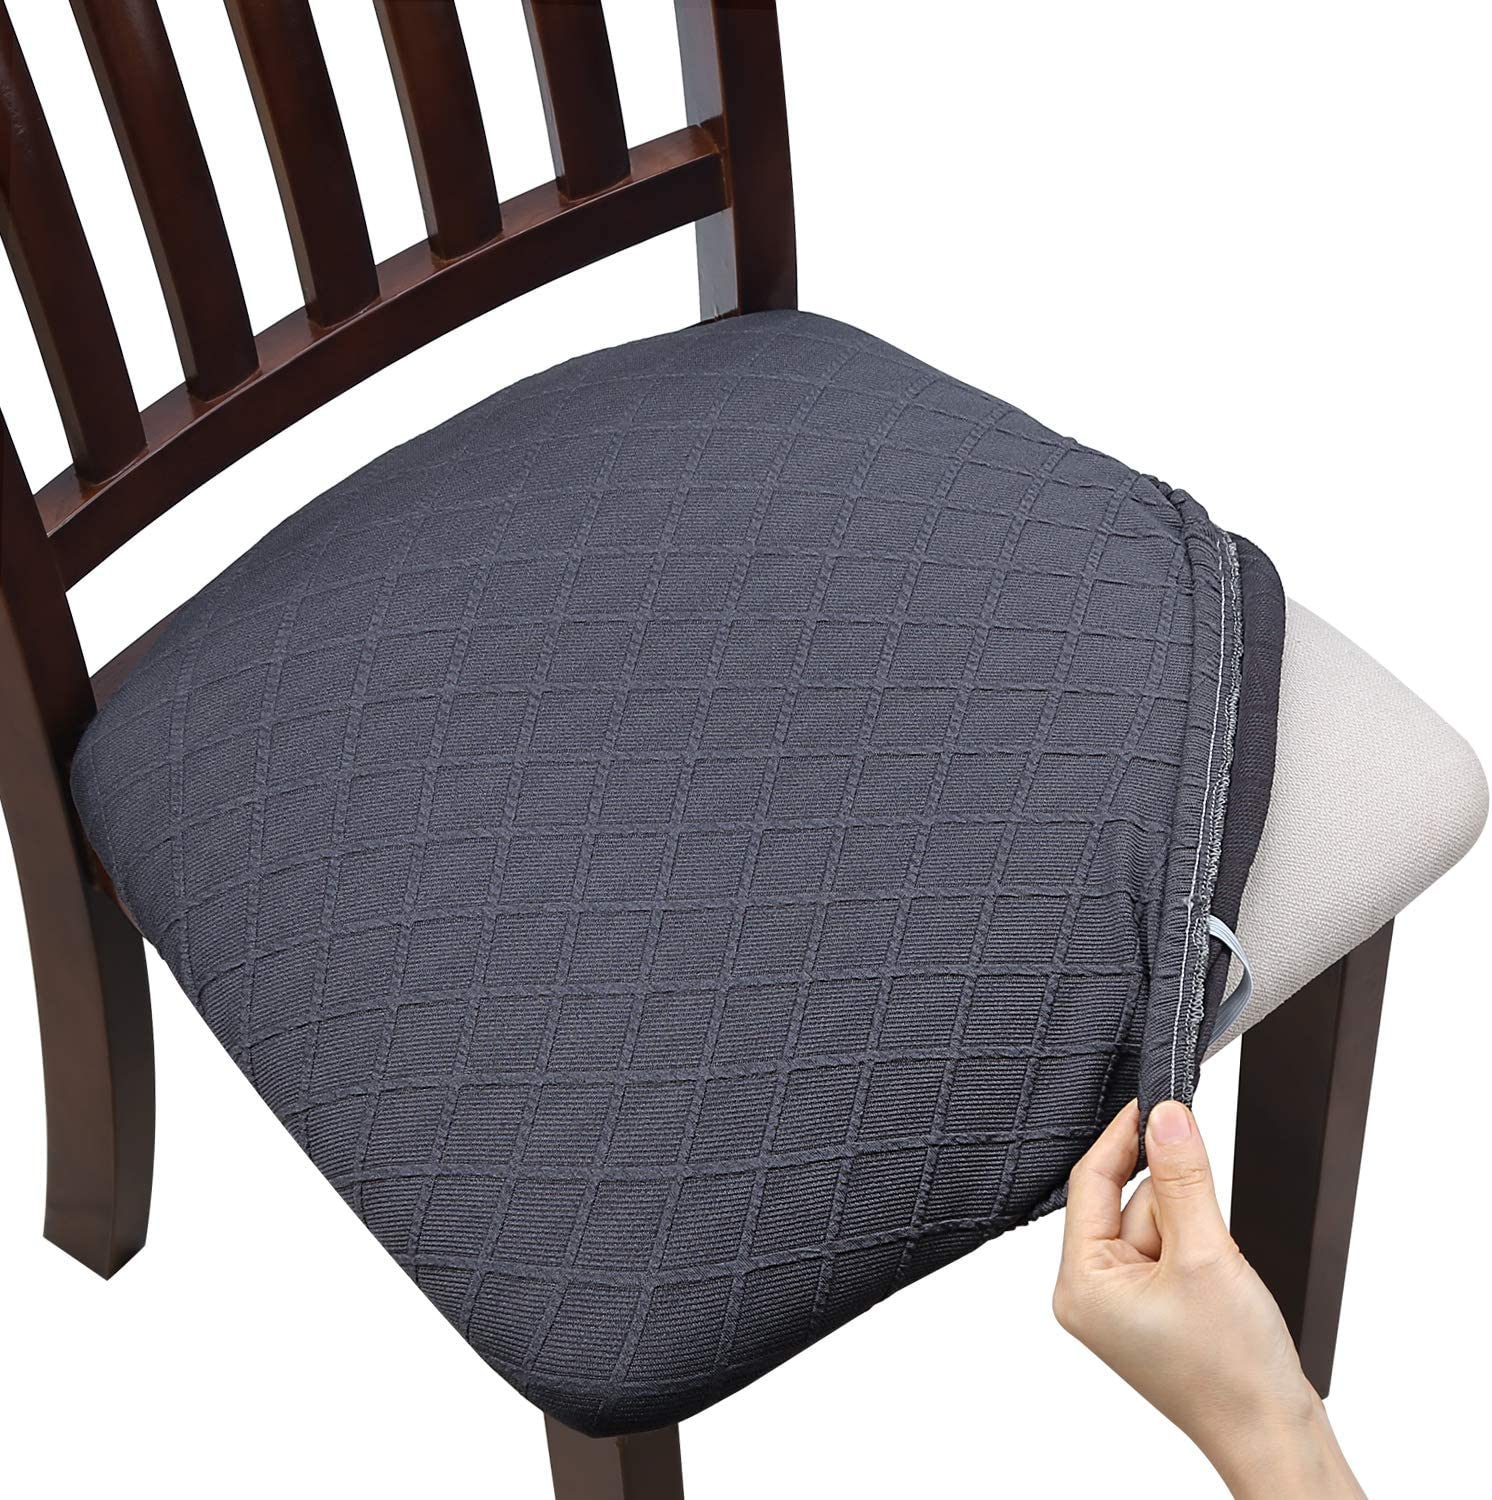 Fuloon Stretch Jacquard Chair Seat Covers,Removable Washable Anti-Dust Dinning Room Chair Seat Cushion Slipcovers (4, Gray)